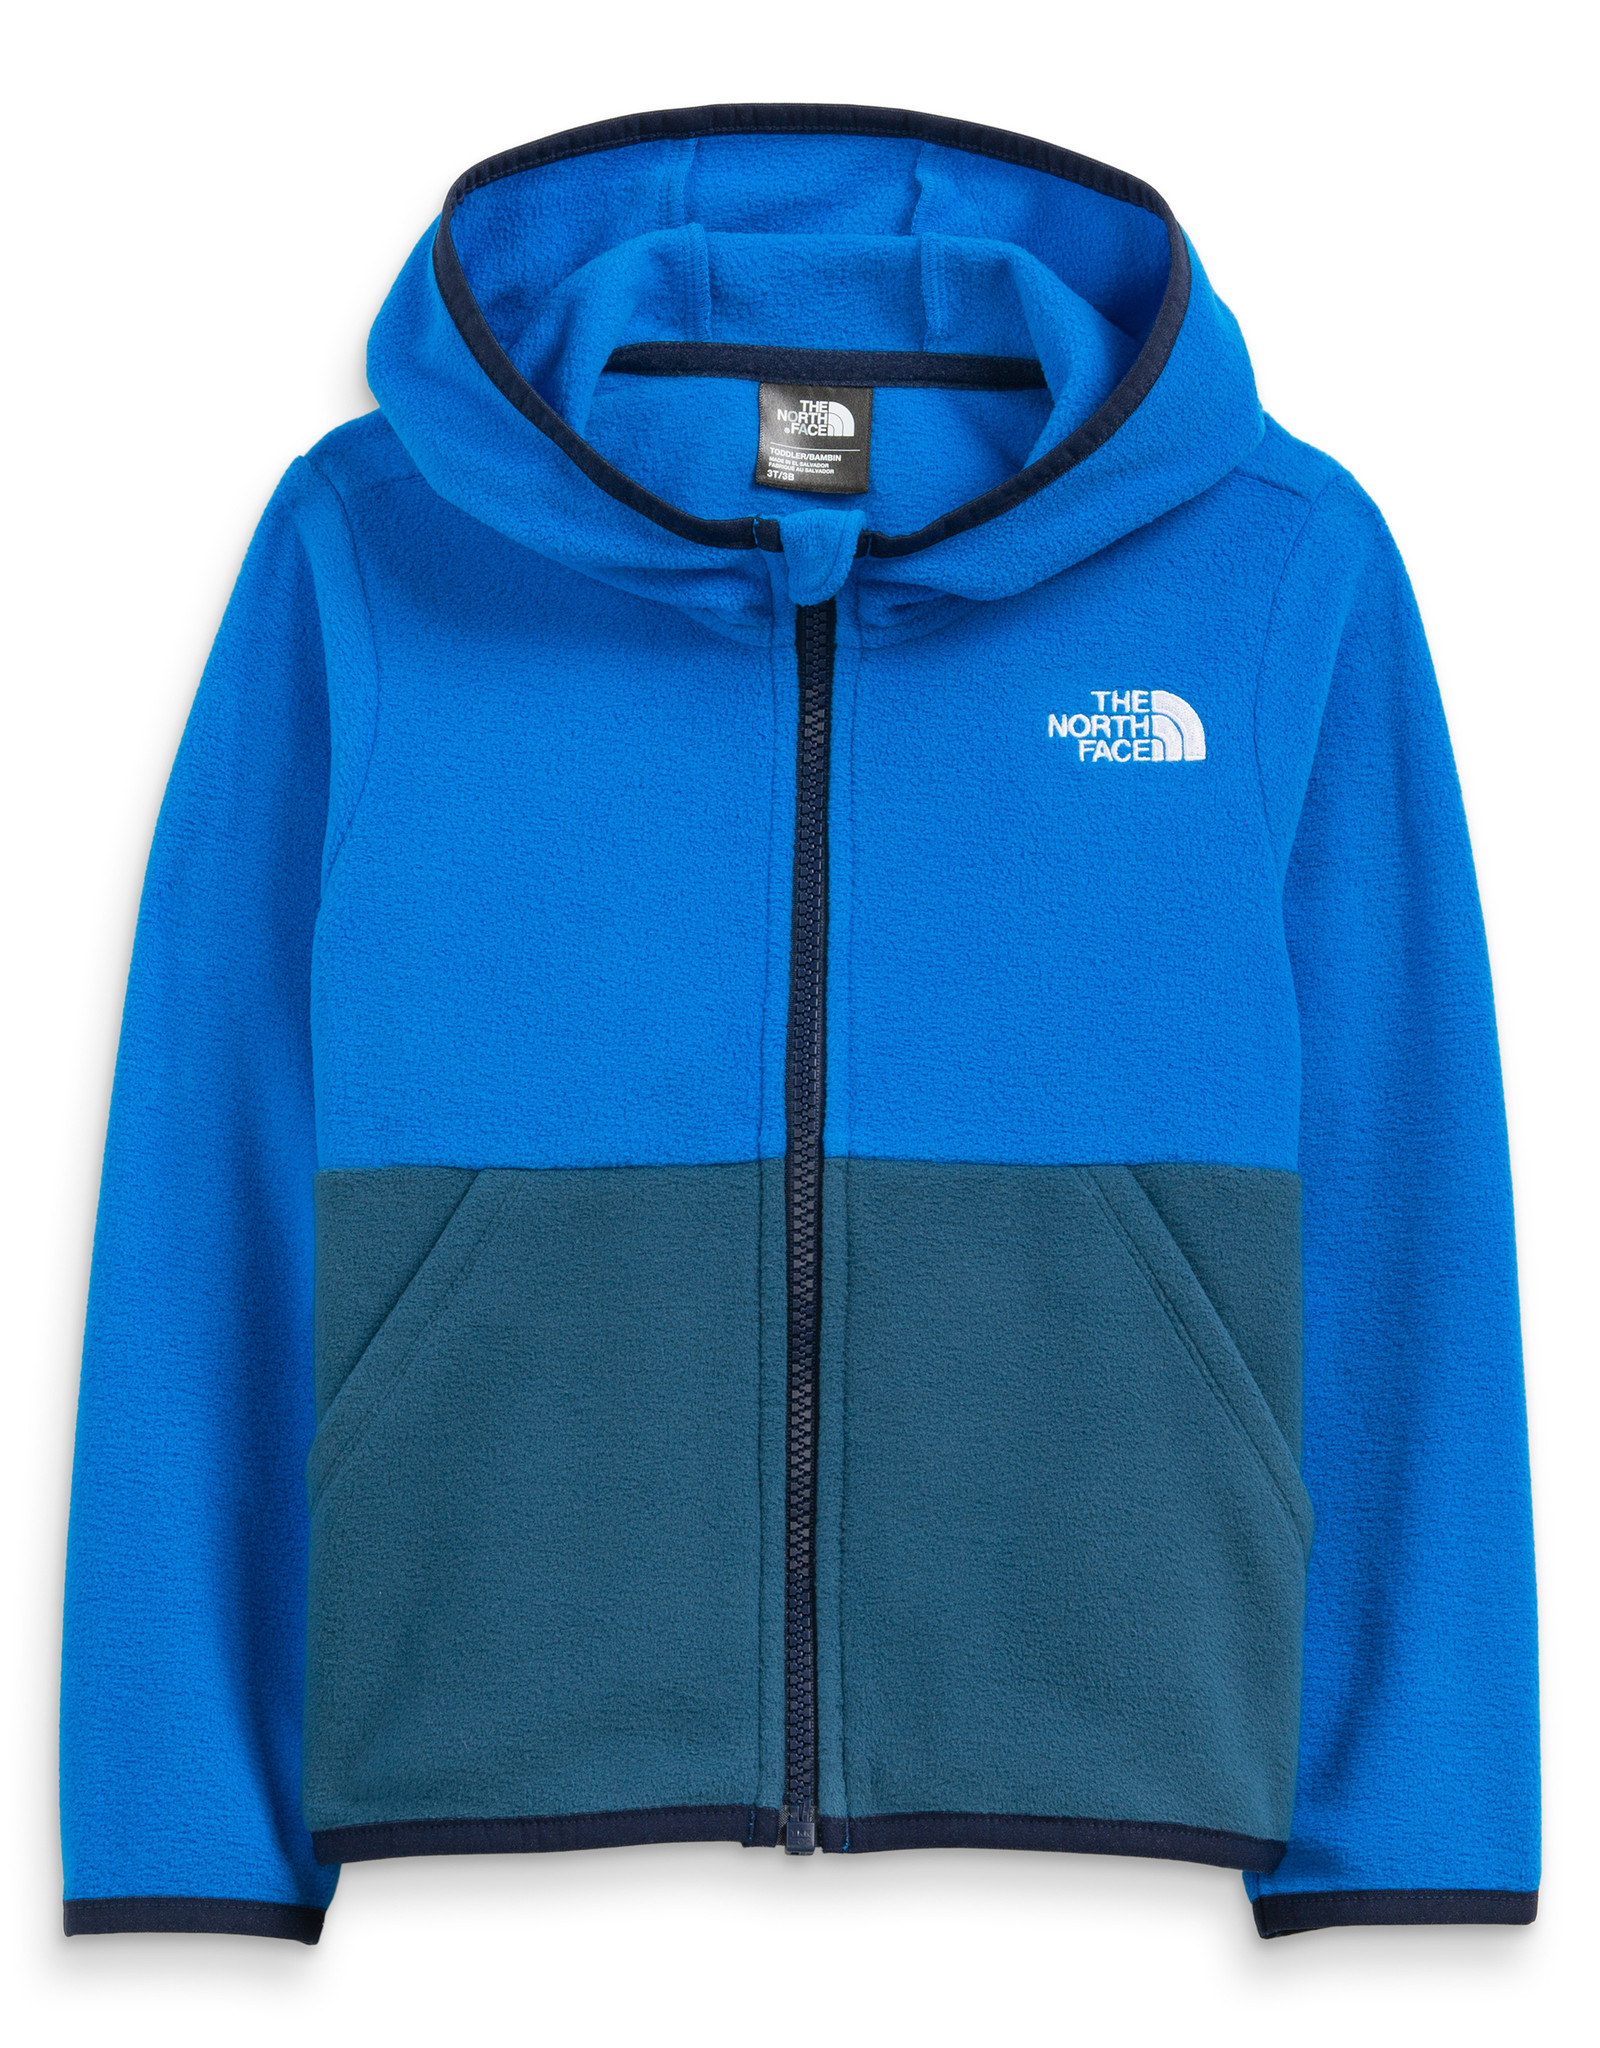 The North Face The North Face Toddler Glacier Full Zip Hoodie -W2022